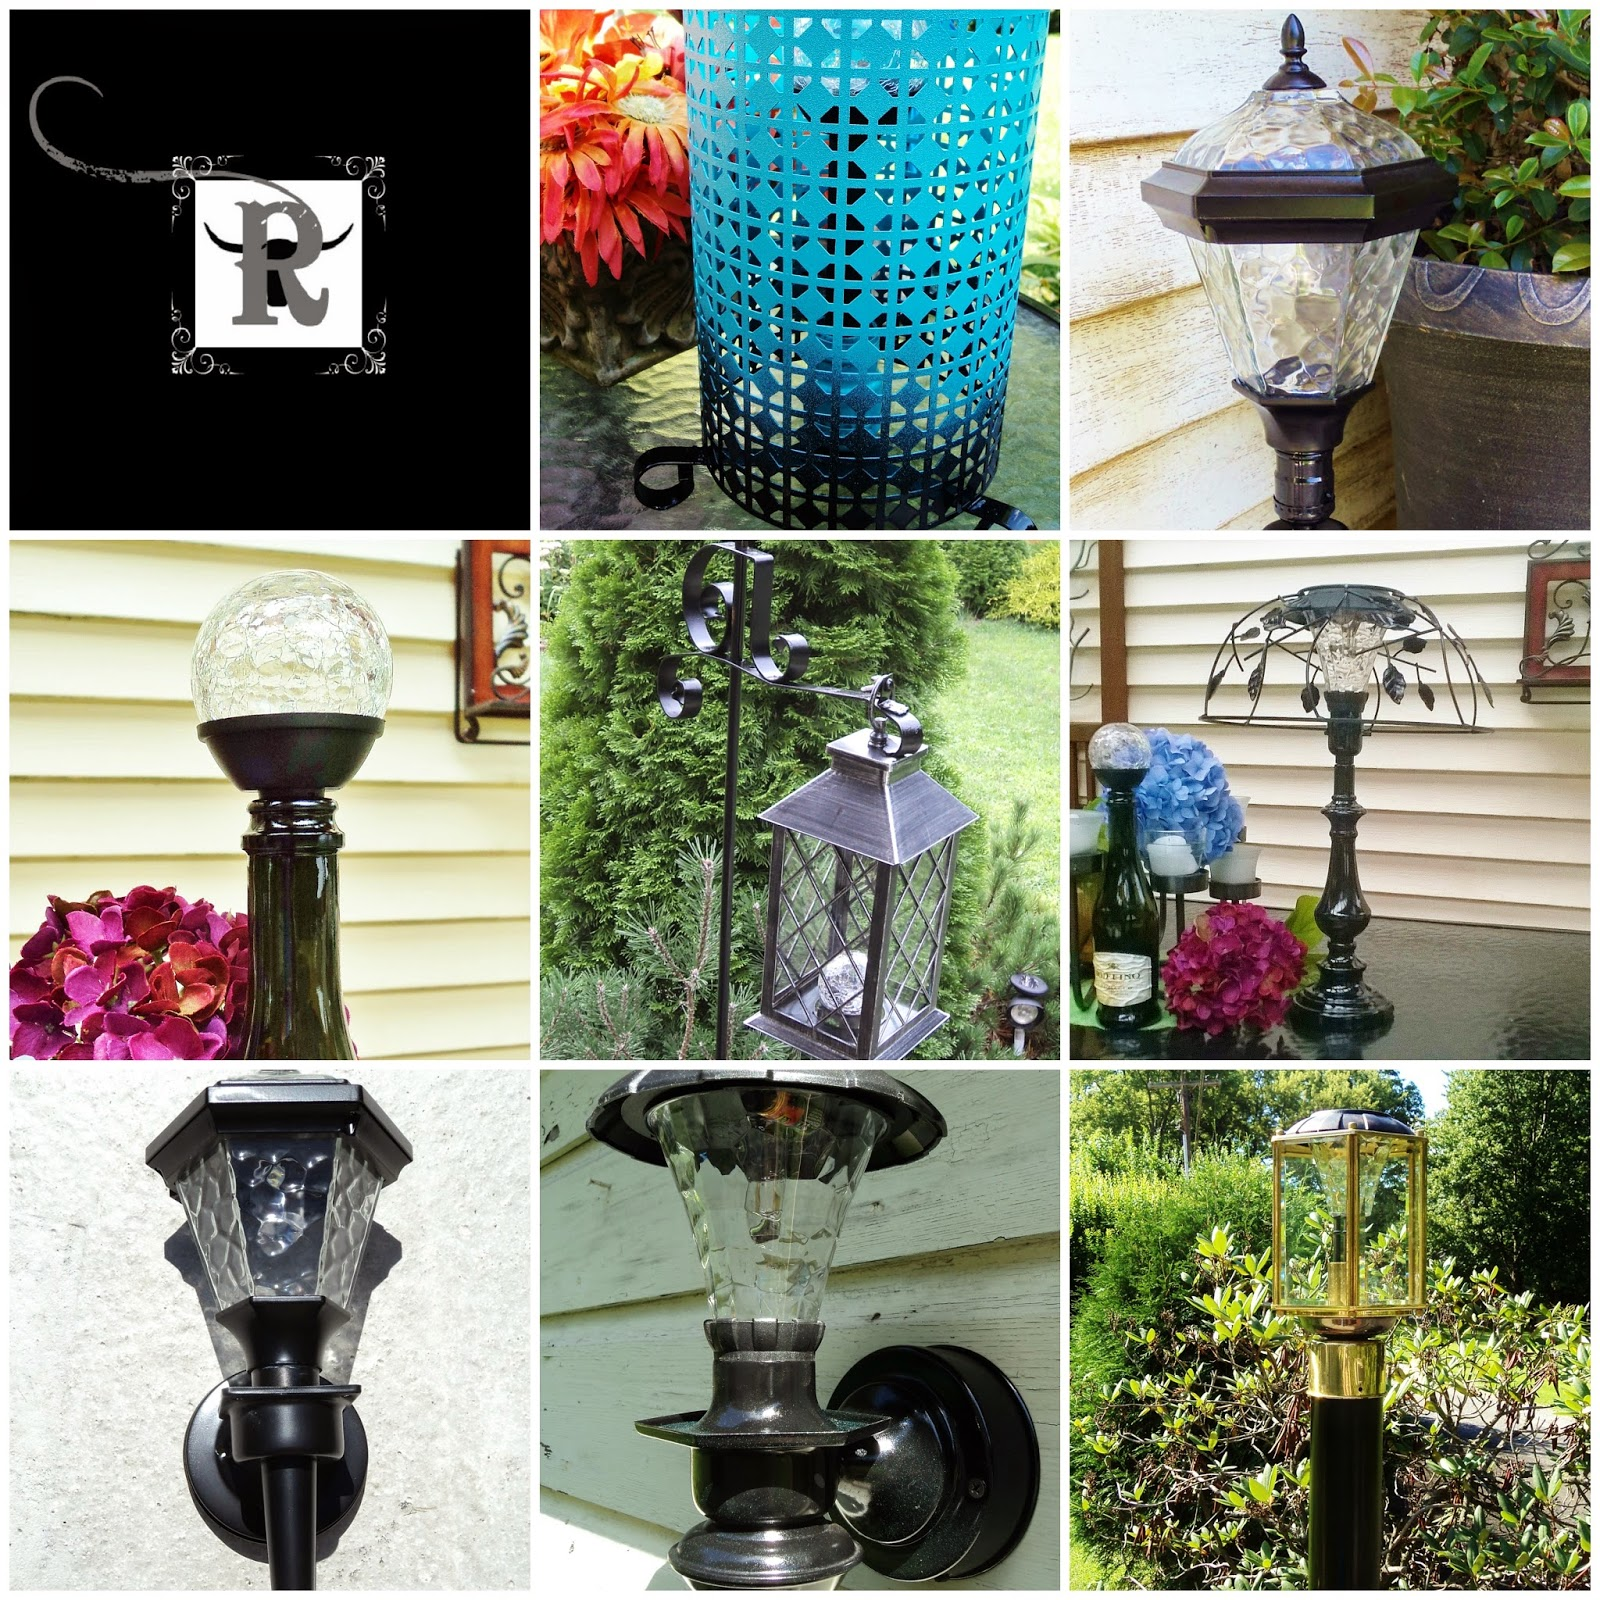 Diy Lighting Ideas: Cut The Cord: Solar Lighting Part 2